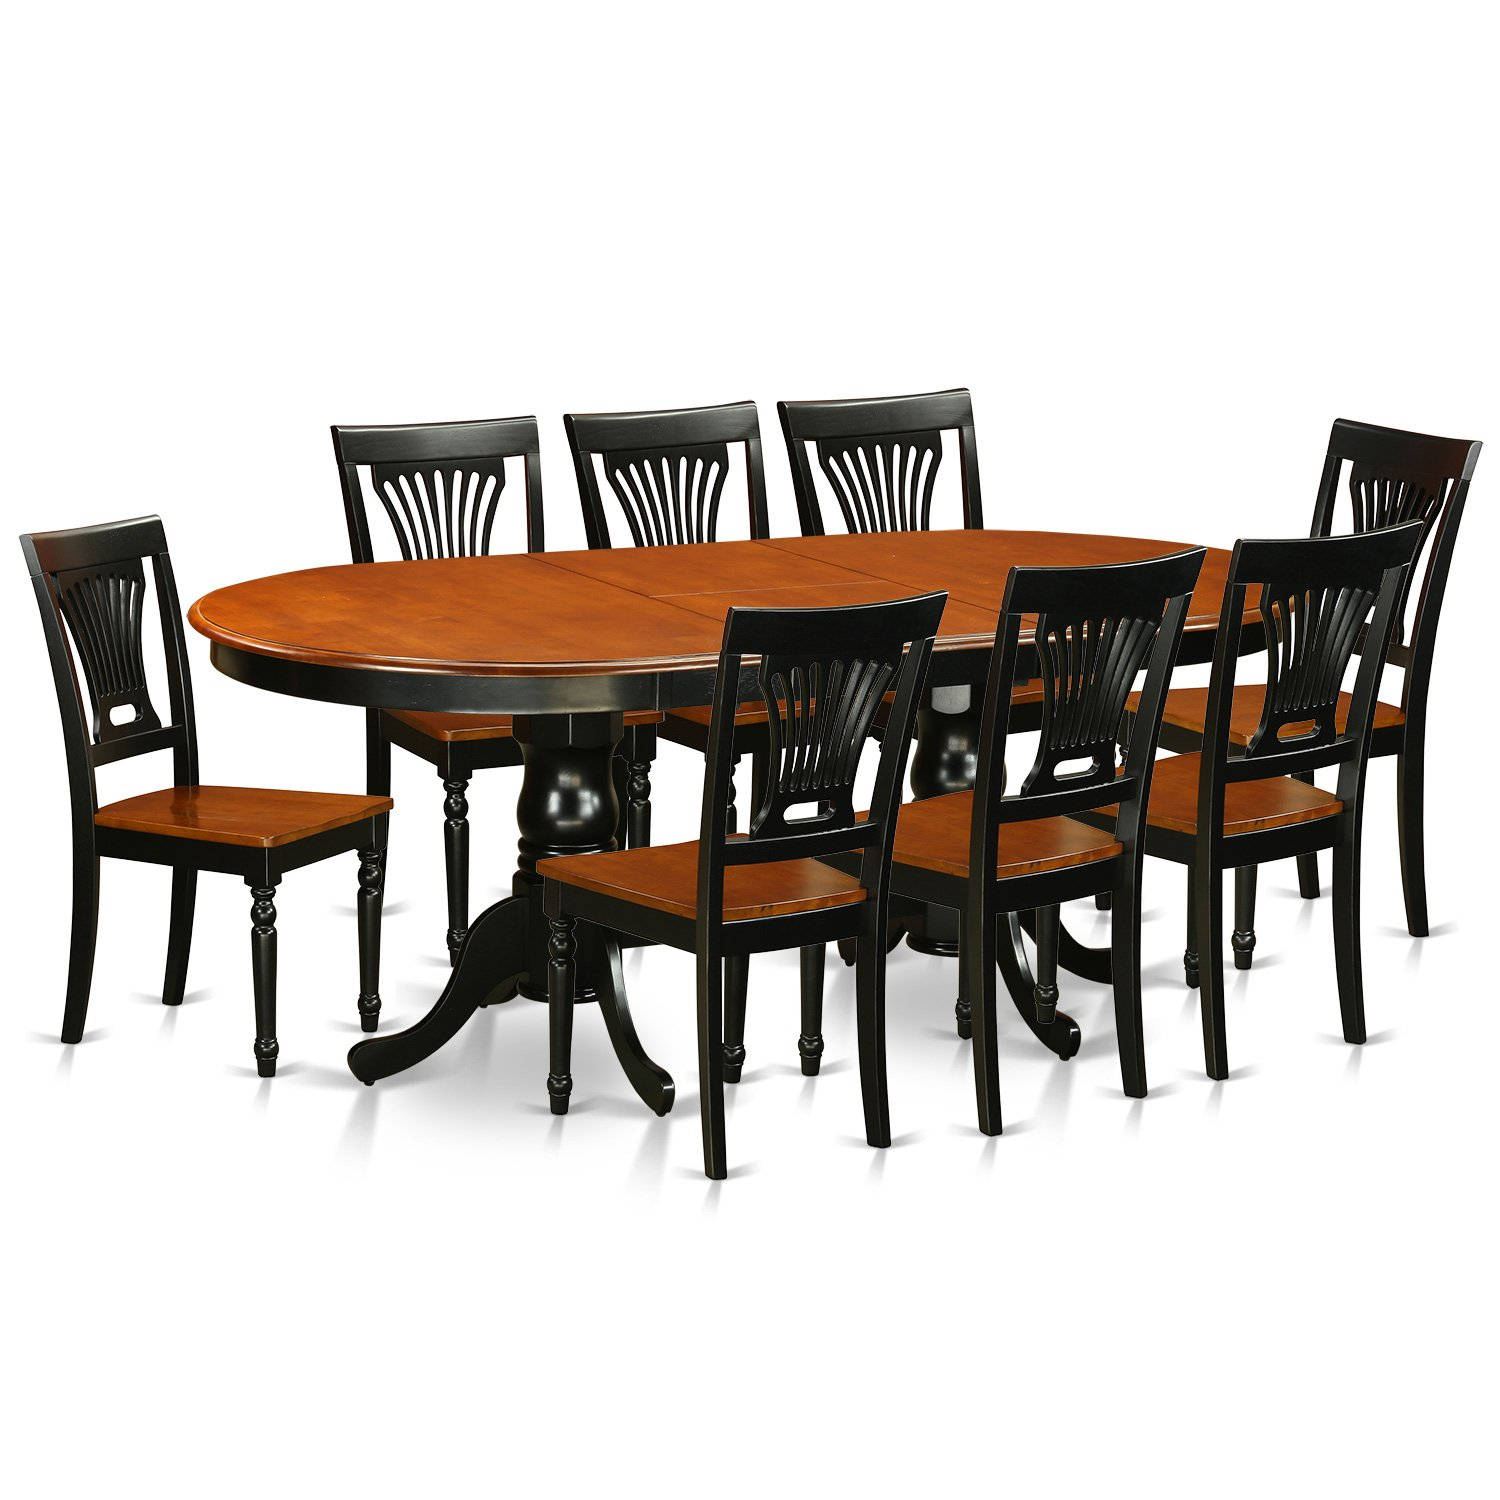 East West Furniture PLAI9-BLK-W 9 PC Dining Room Set for 8-Dining Table and 8 Chairs for Dining Room